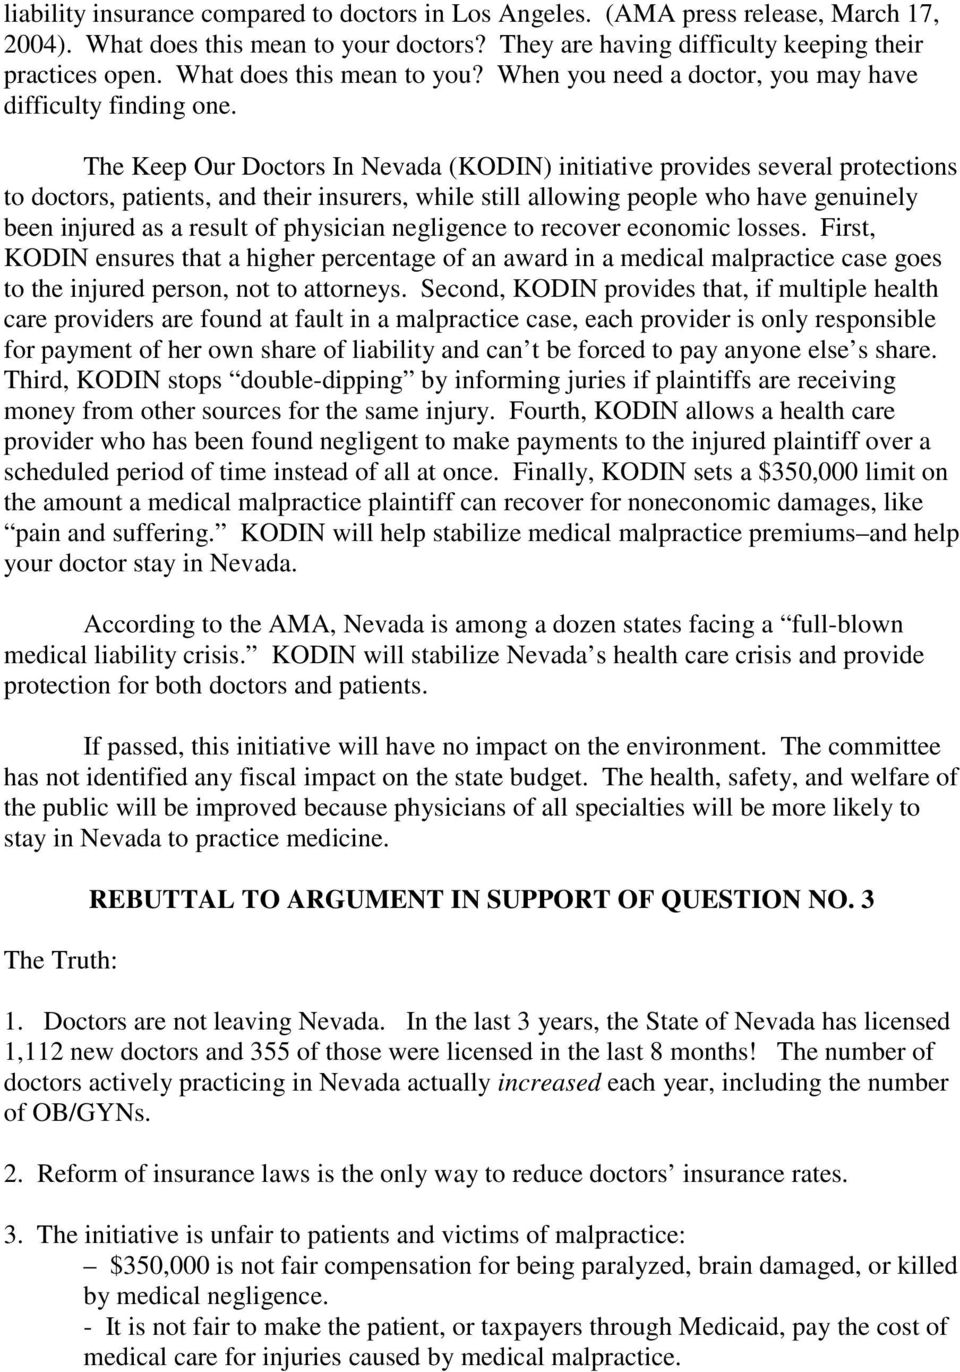 The Keep Our Doctors In Nevada (KODIN) initiative provides several protections to doctors, patients, and their insurers, while still allowing people who have genuinely been injured as a result of